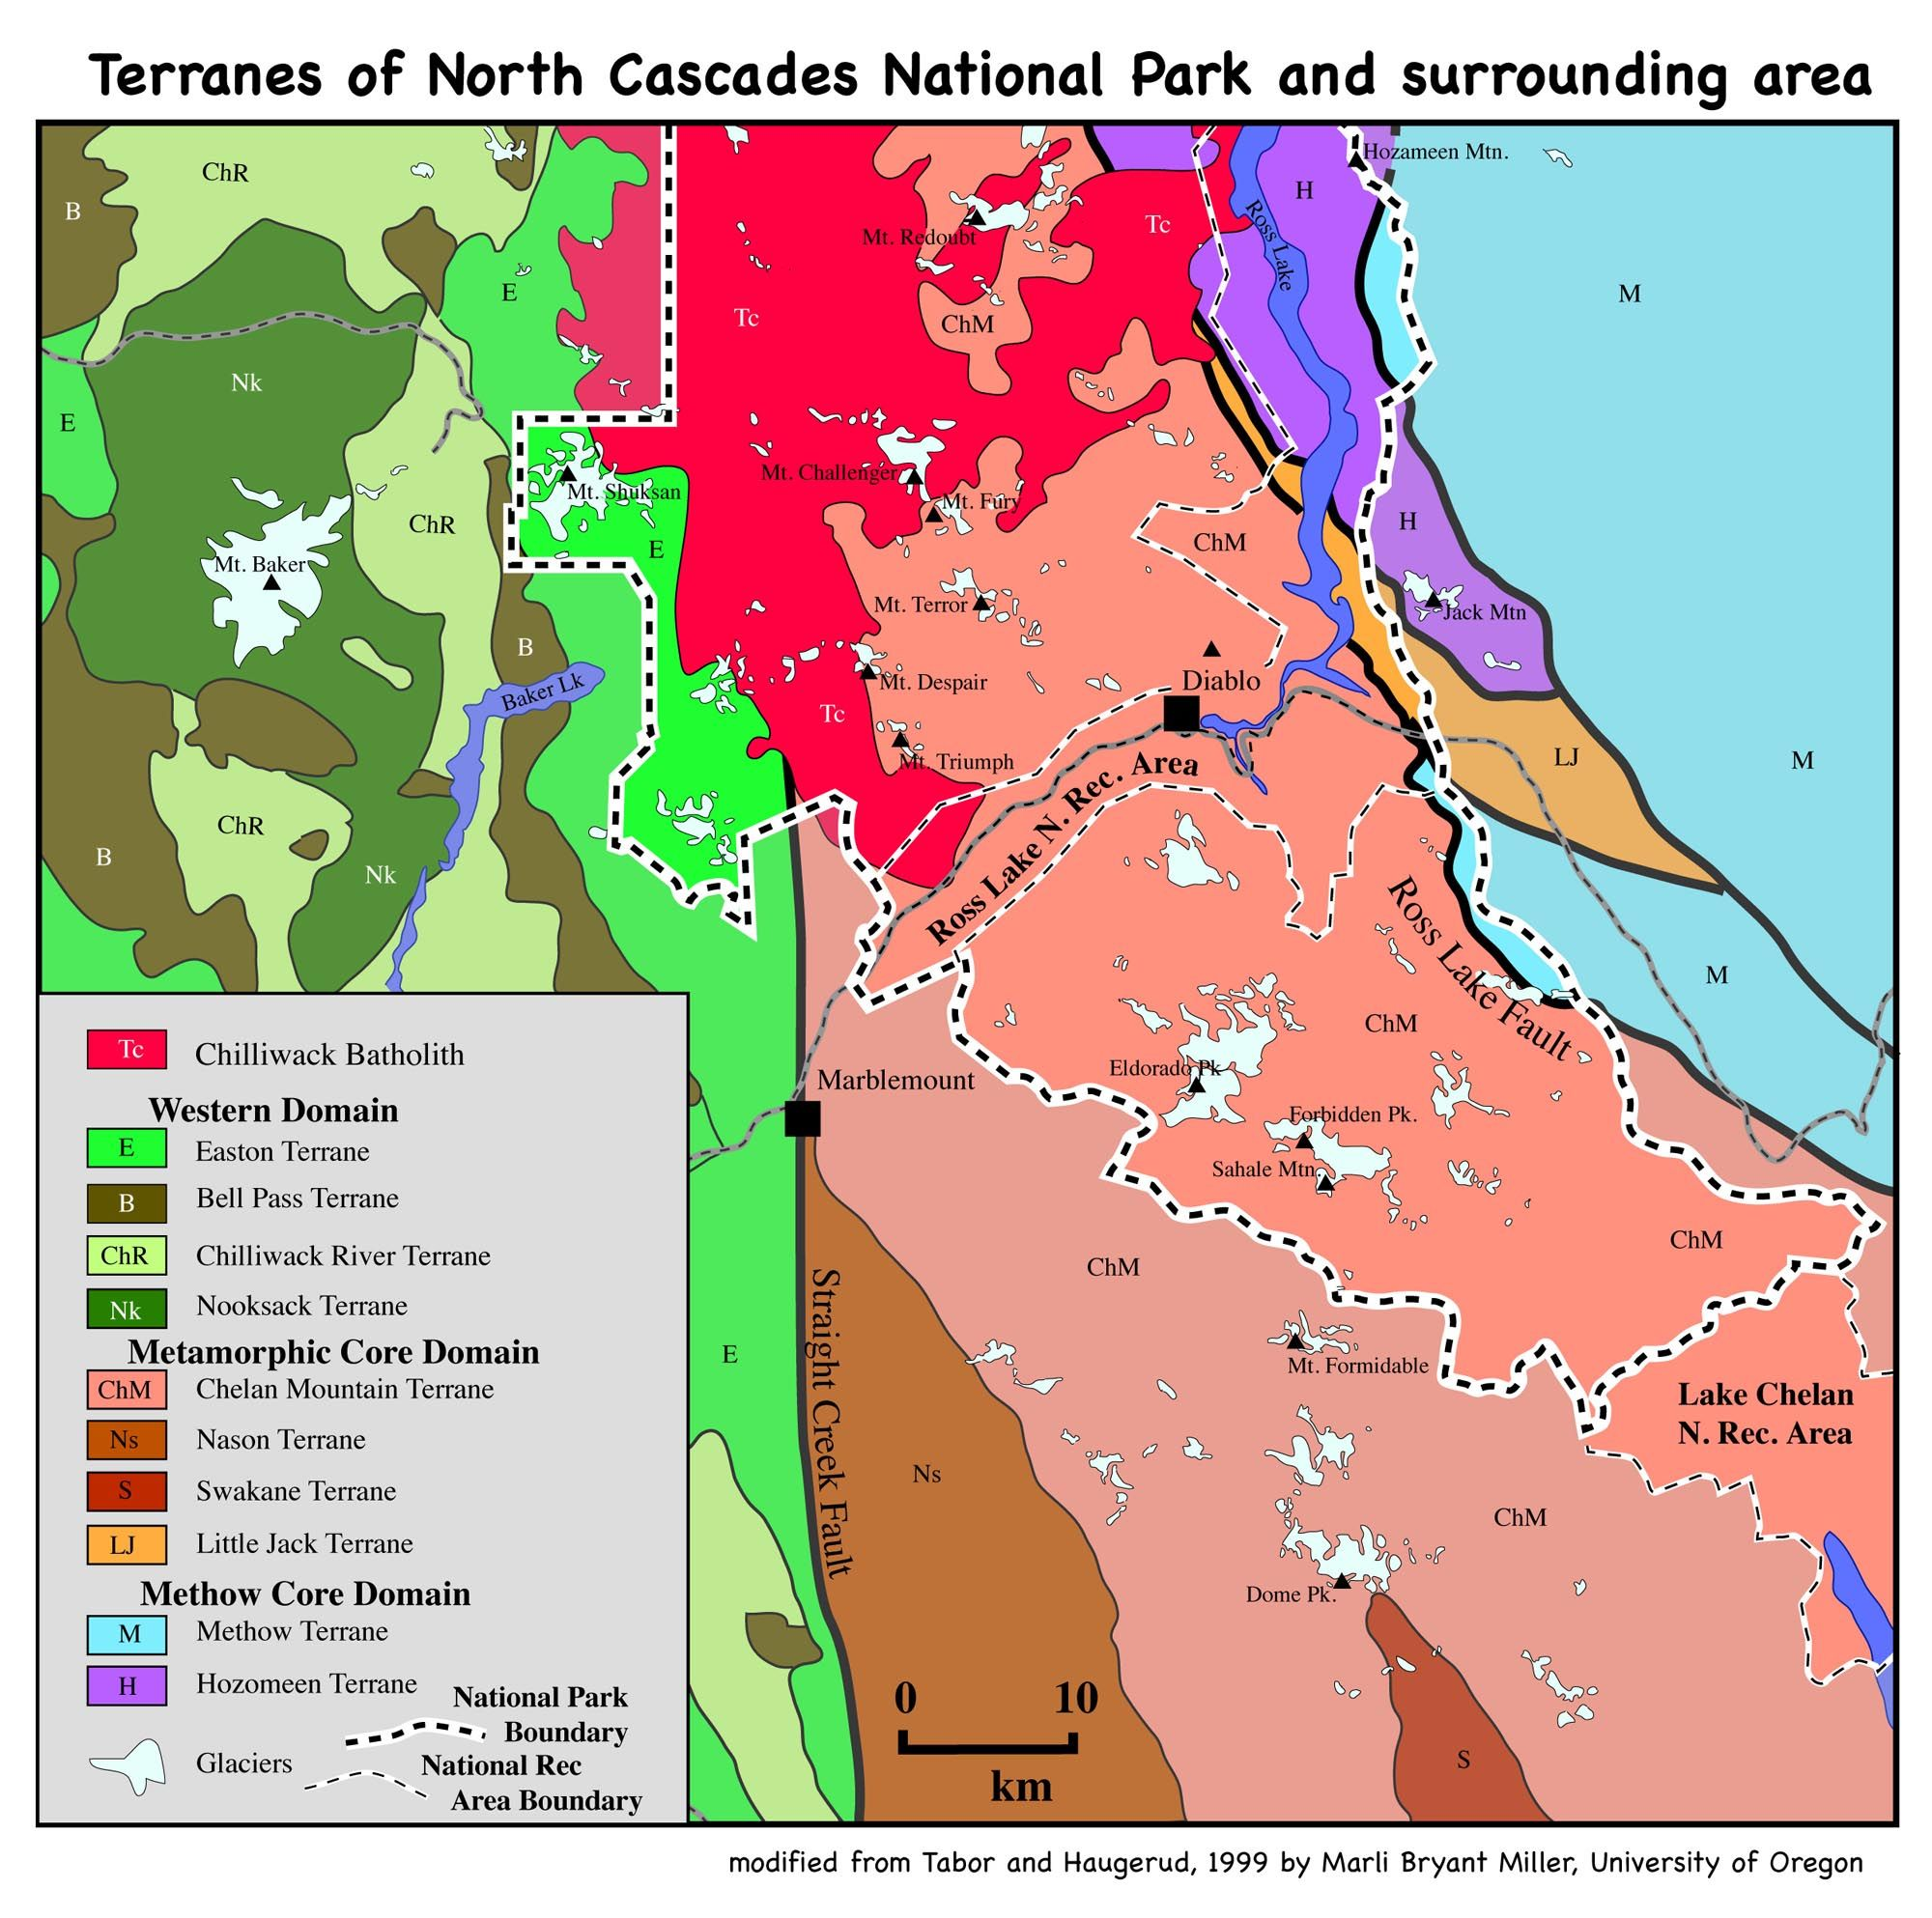 North Cascades Geologic map. | NW Geology - The Moving ... on ancient map of washington state, detailed map of washington state, map of volcanoes in washington state, soil map of washington state, topological map of washington state, geological features in washington, northwest coast of washington state, geographic center of washington state, geographical map of washington state, rock map of washington state, precipitation in washington state, recreational map of washington state, historical landslides in washington state, geological maps of nebraska with legend, agenda 21 map washington state, mineral map of washington state, forest map of washington state, geologic features of washington state, gold creeks of washington state, thematic map of washington state,